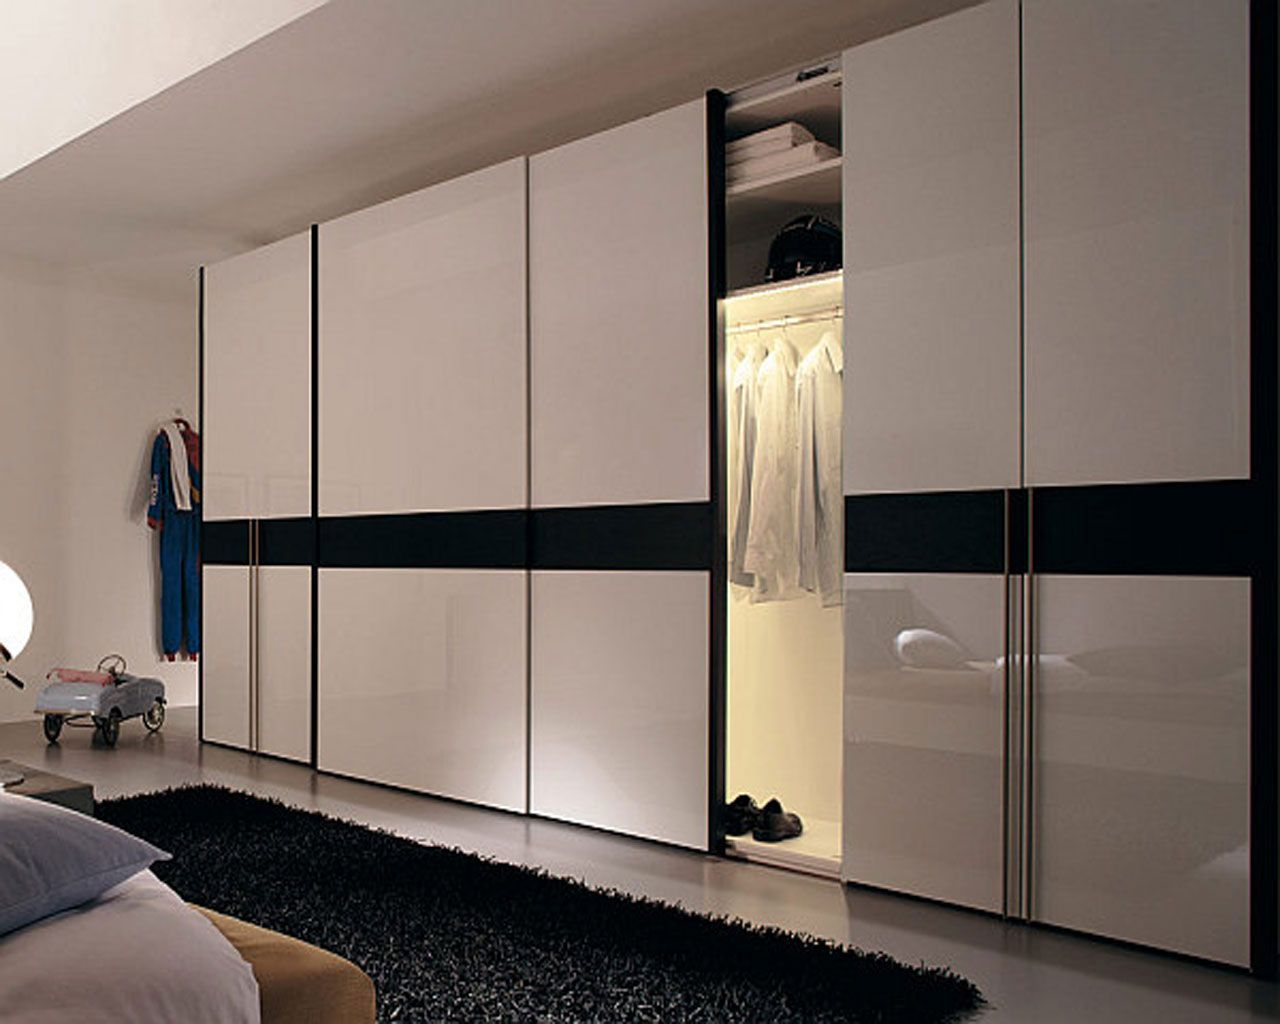 Mirror Door Wardrobes Ikea Latest Ikea Kitchen Design Catalogue Wardrobe Design Bedroom Sliding Wardrobe Designs Sliding Door Wardrobe Designs